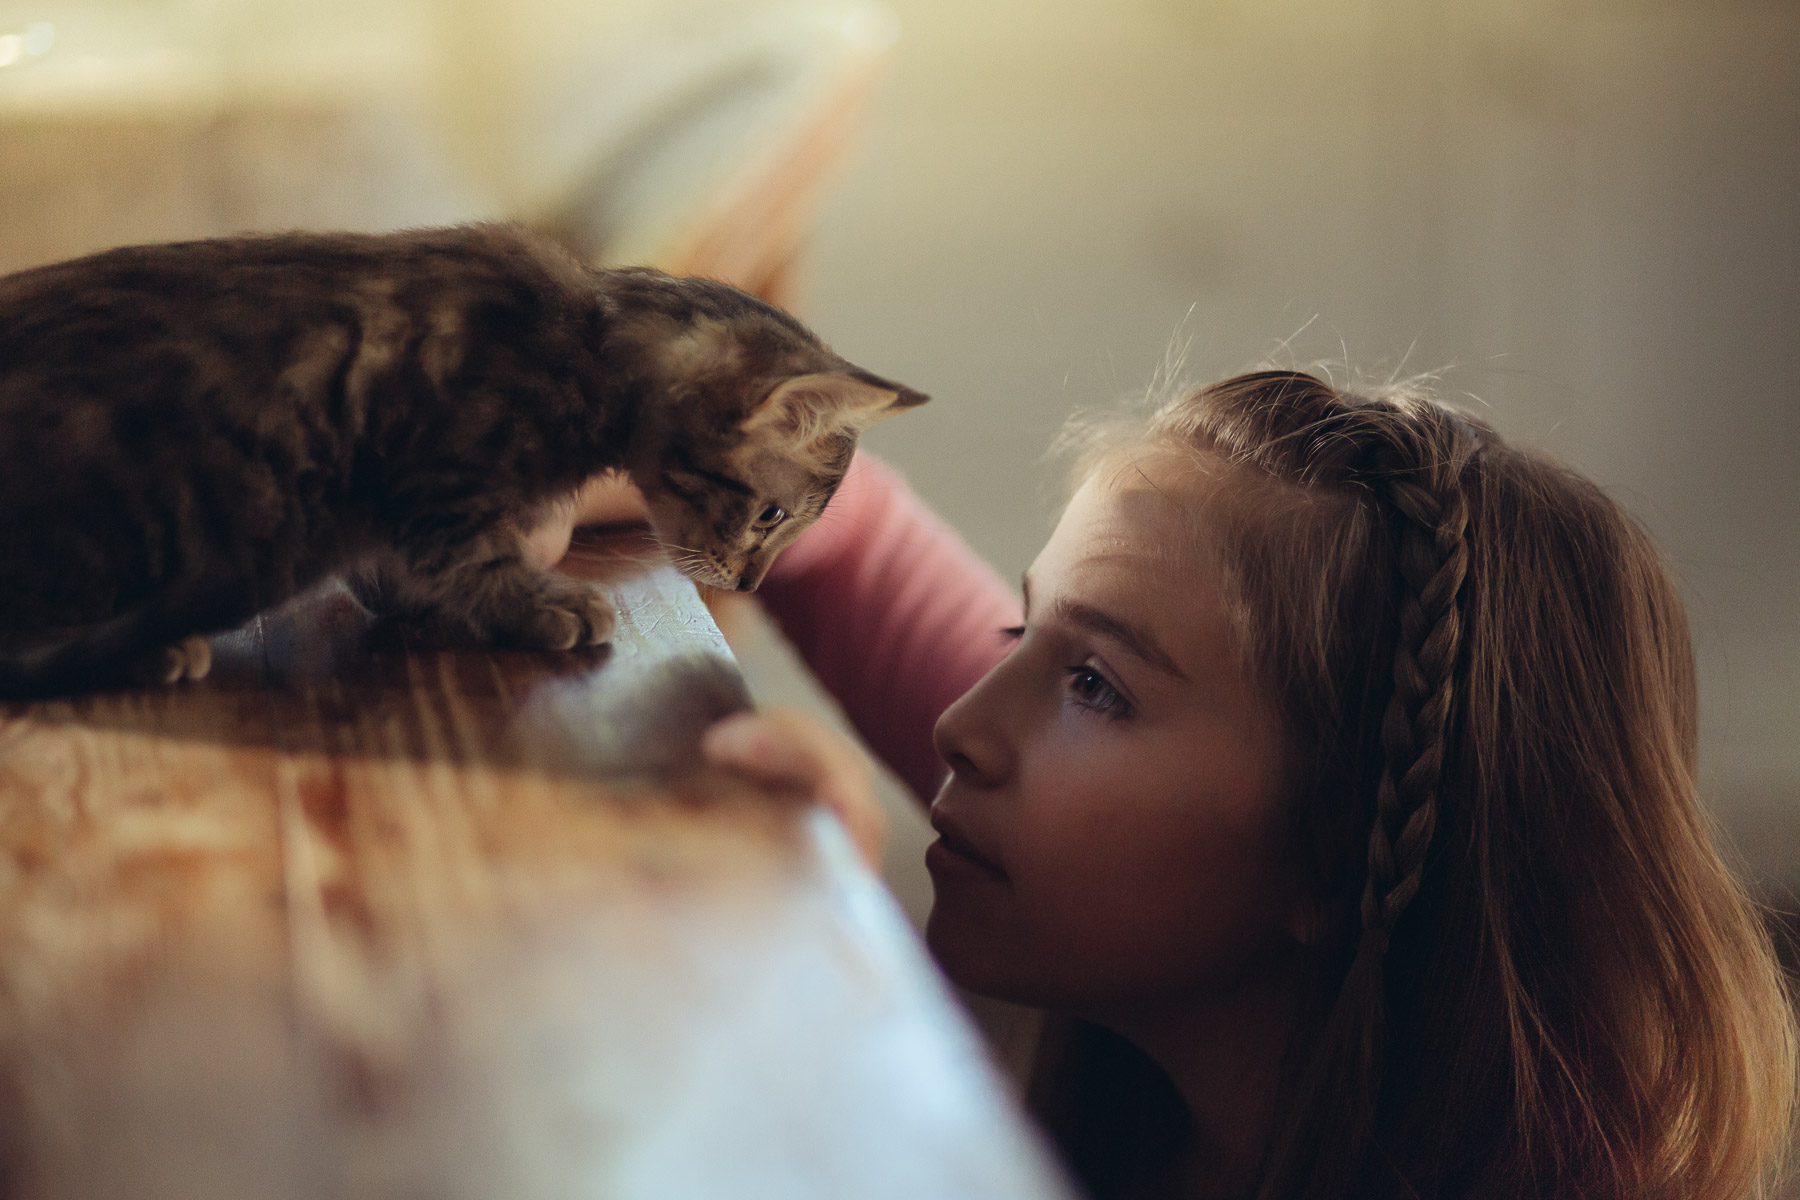 cat-photography-little-girl-with-cat-looking-at-each-other.jpg